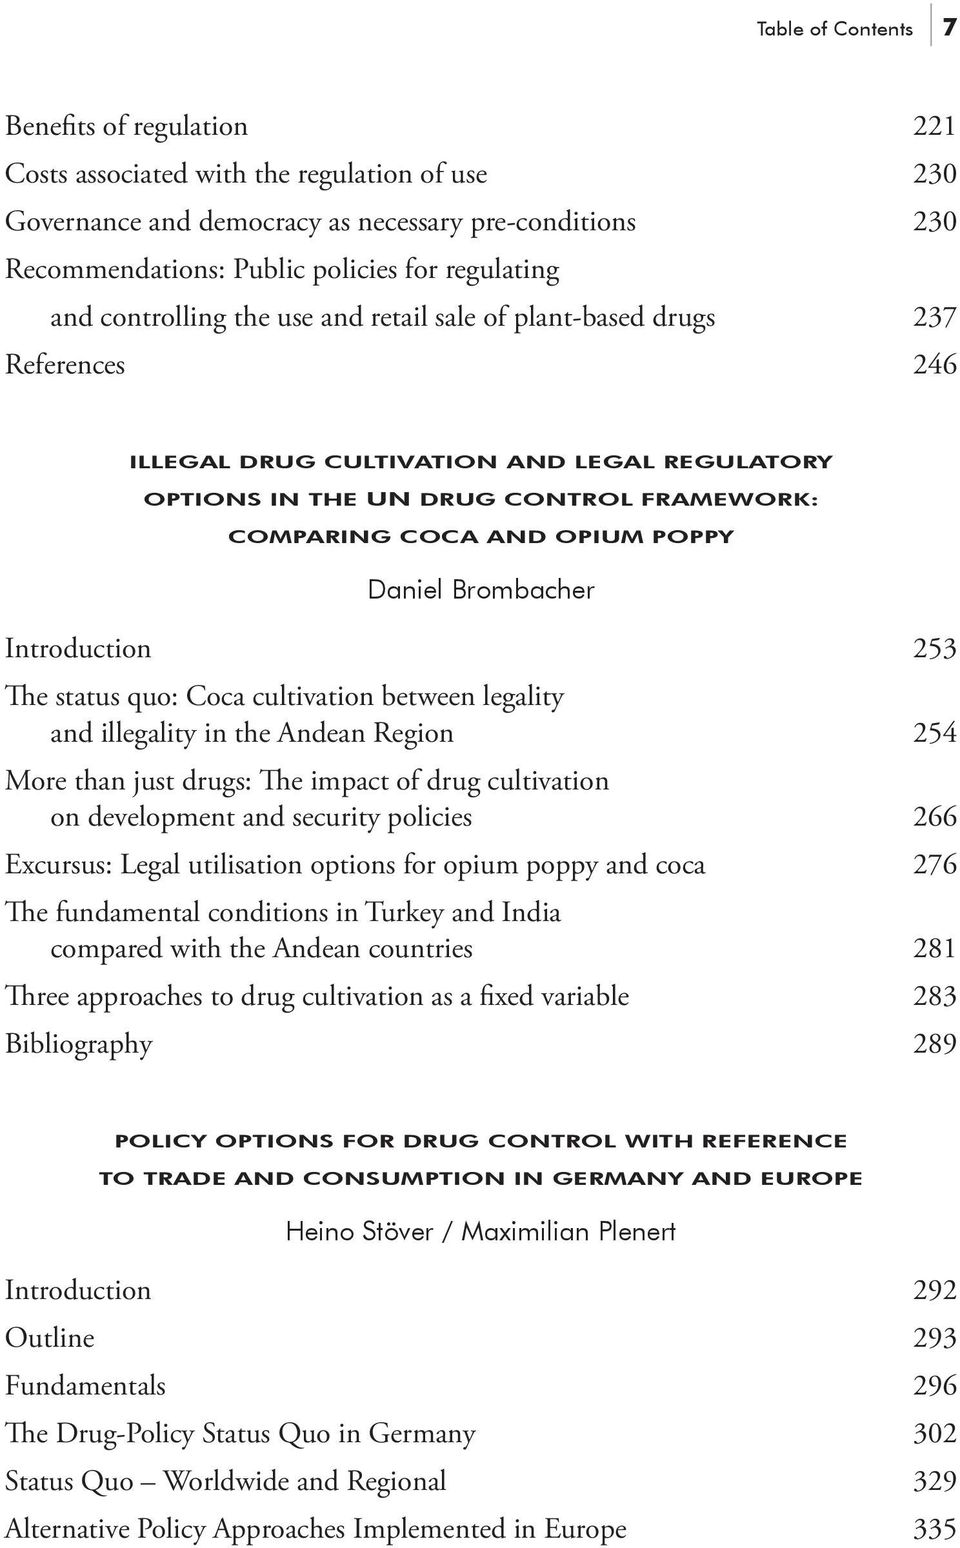 Daniel Brombacher Introduction 253 The status quo: Coca cultivation between legality and illegality in the Andean Region 254 More than just drugs: The impact of drug cultivation on development and